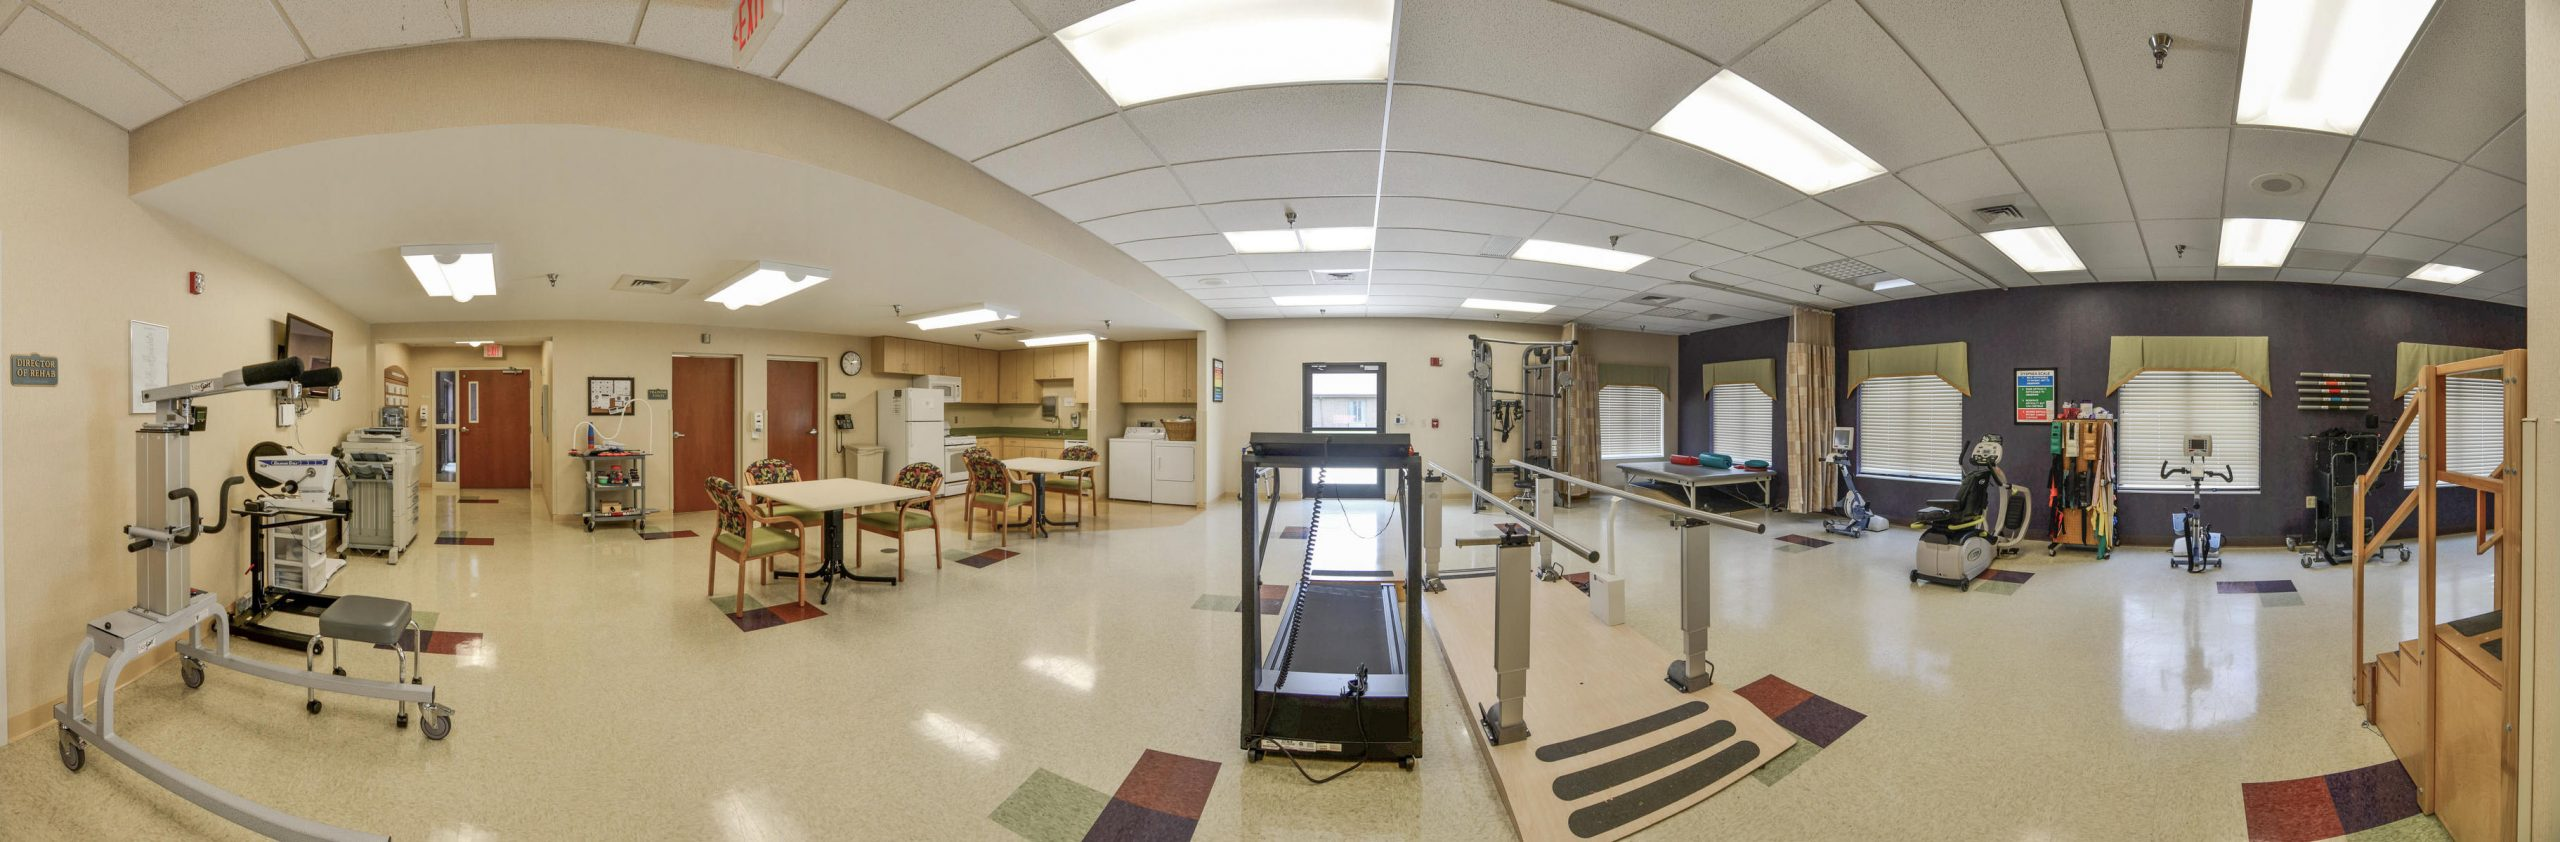 Panoramic view of Stonerise Clarksburg Physical Therapy and Rehabilitation room with exercise equipment